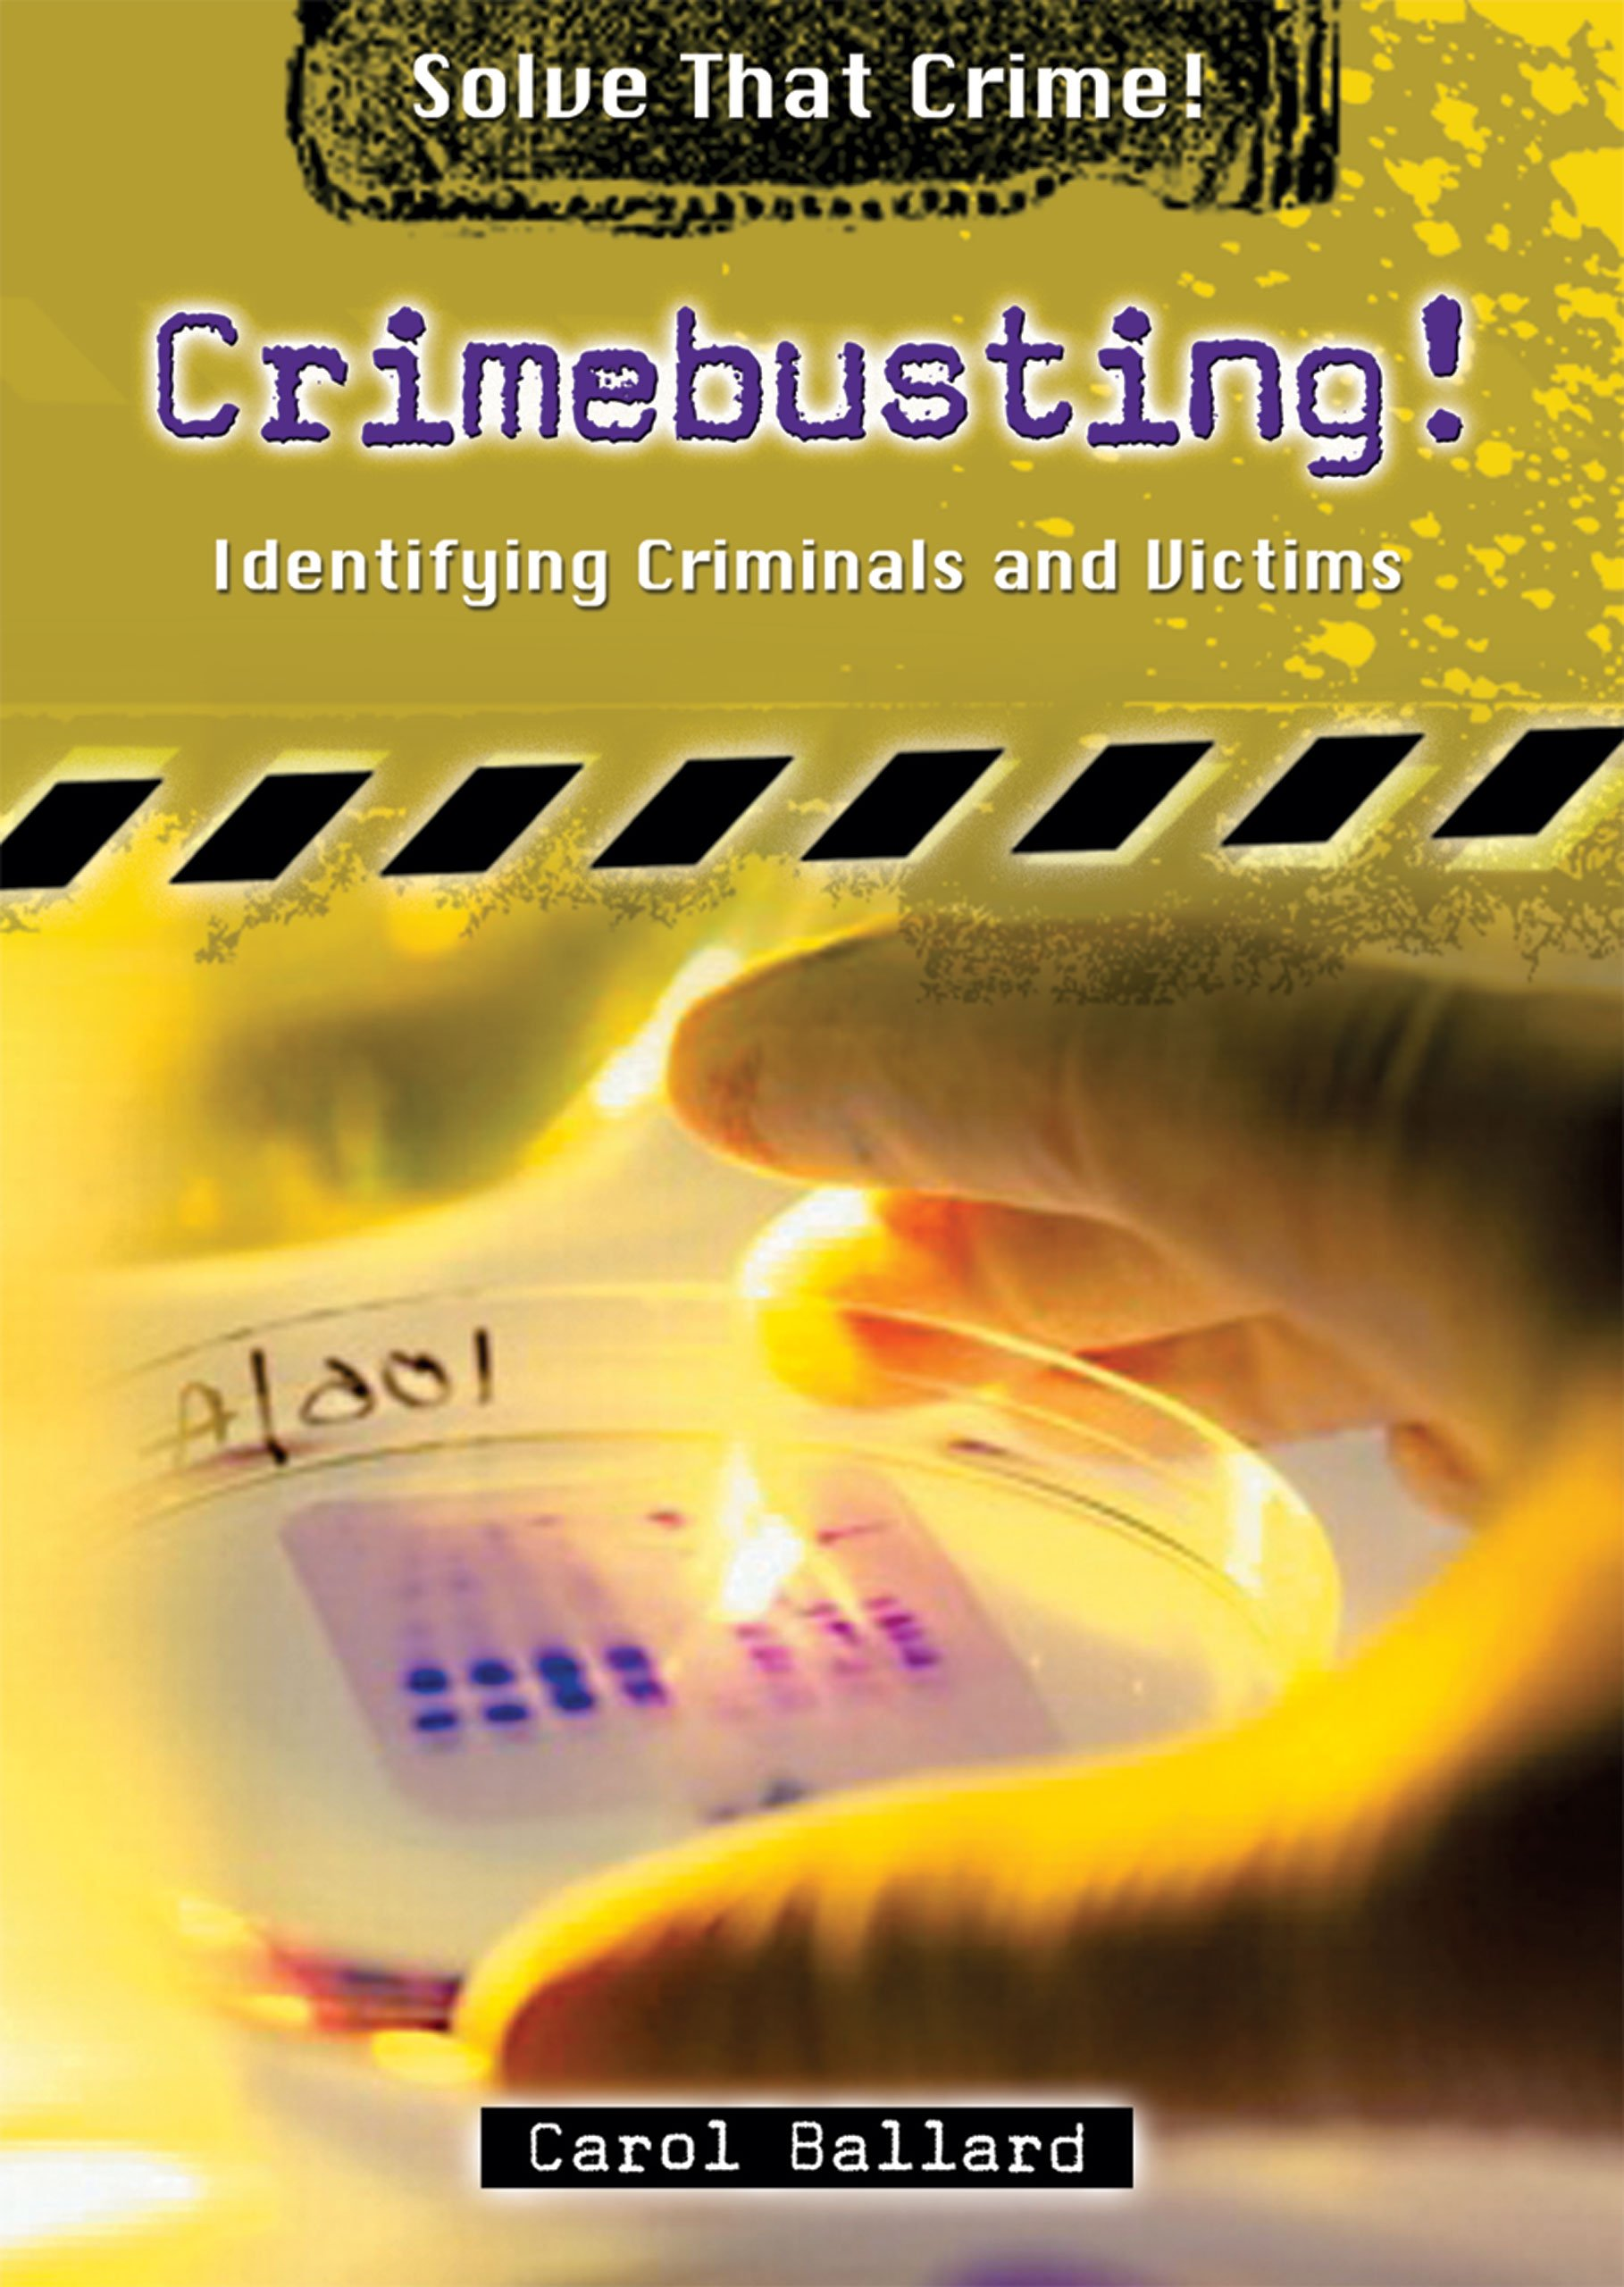 Download Crimebusting!: Identifying Criminals and Victims (Solve That Crime!) ebook